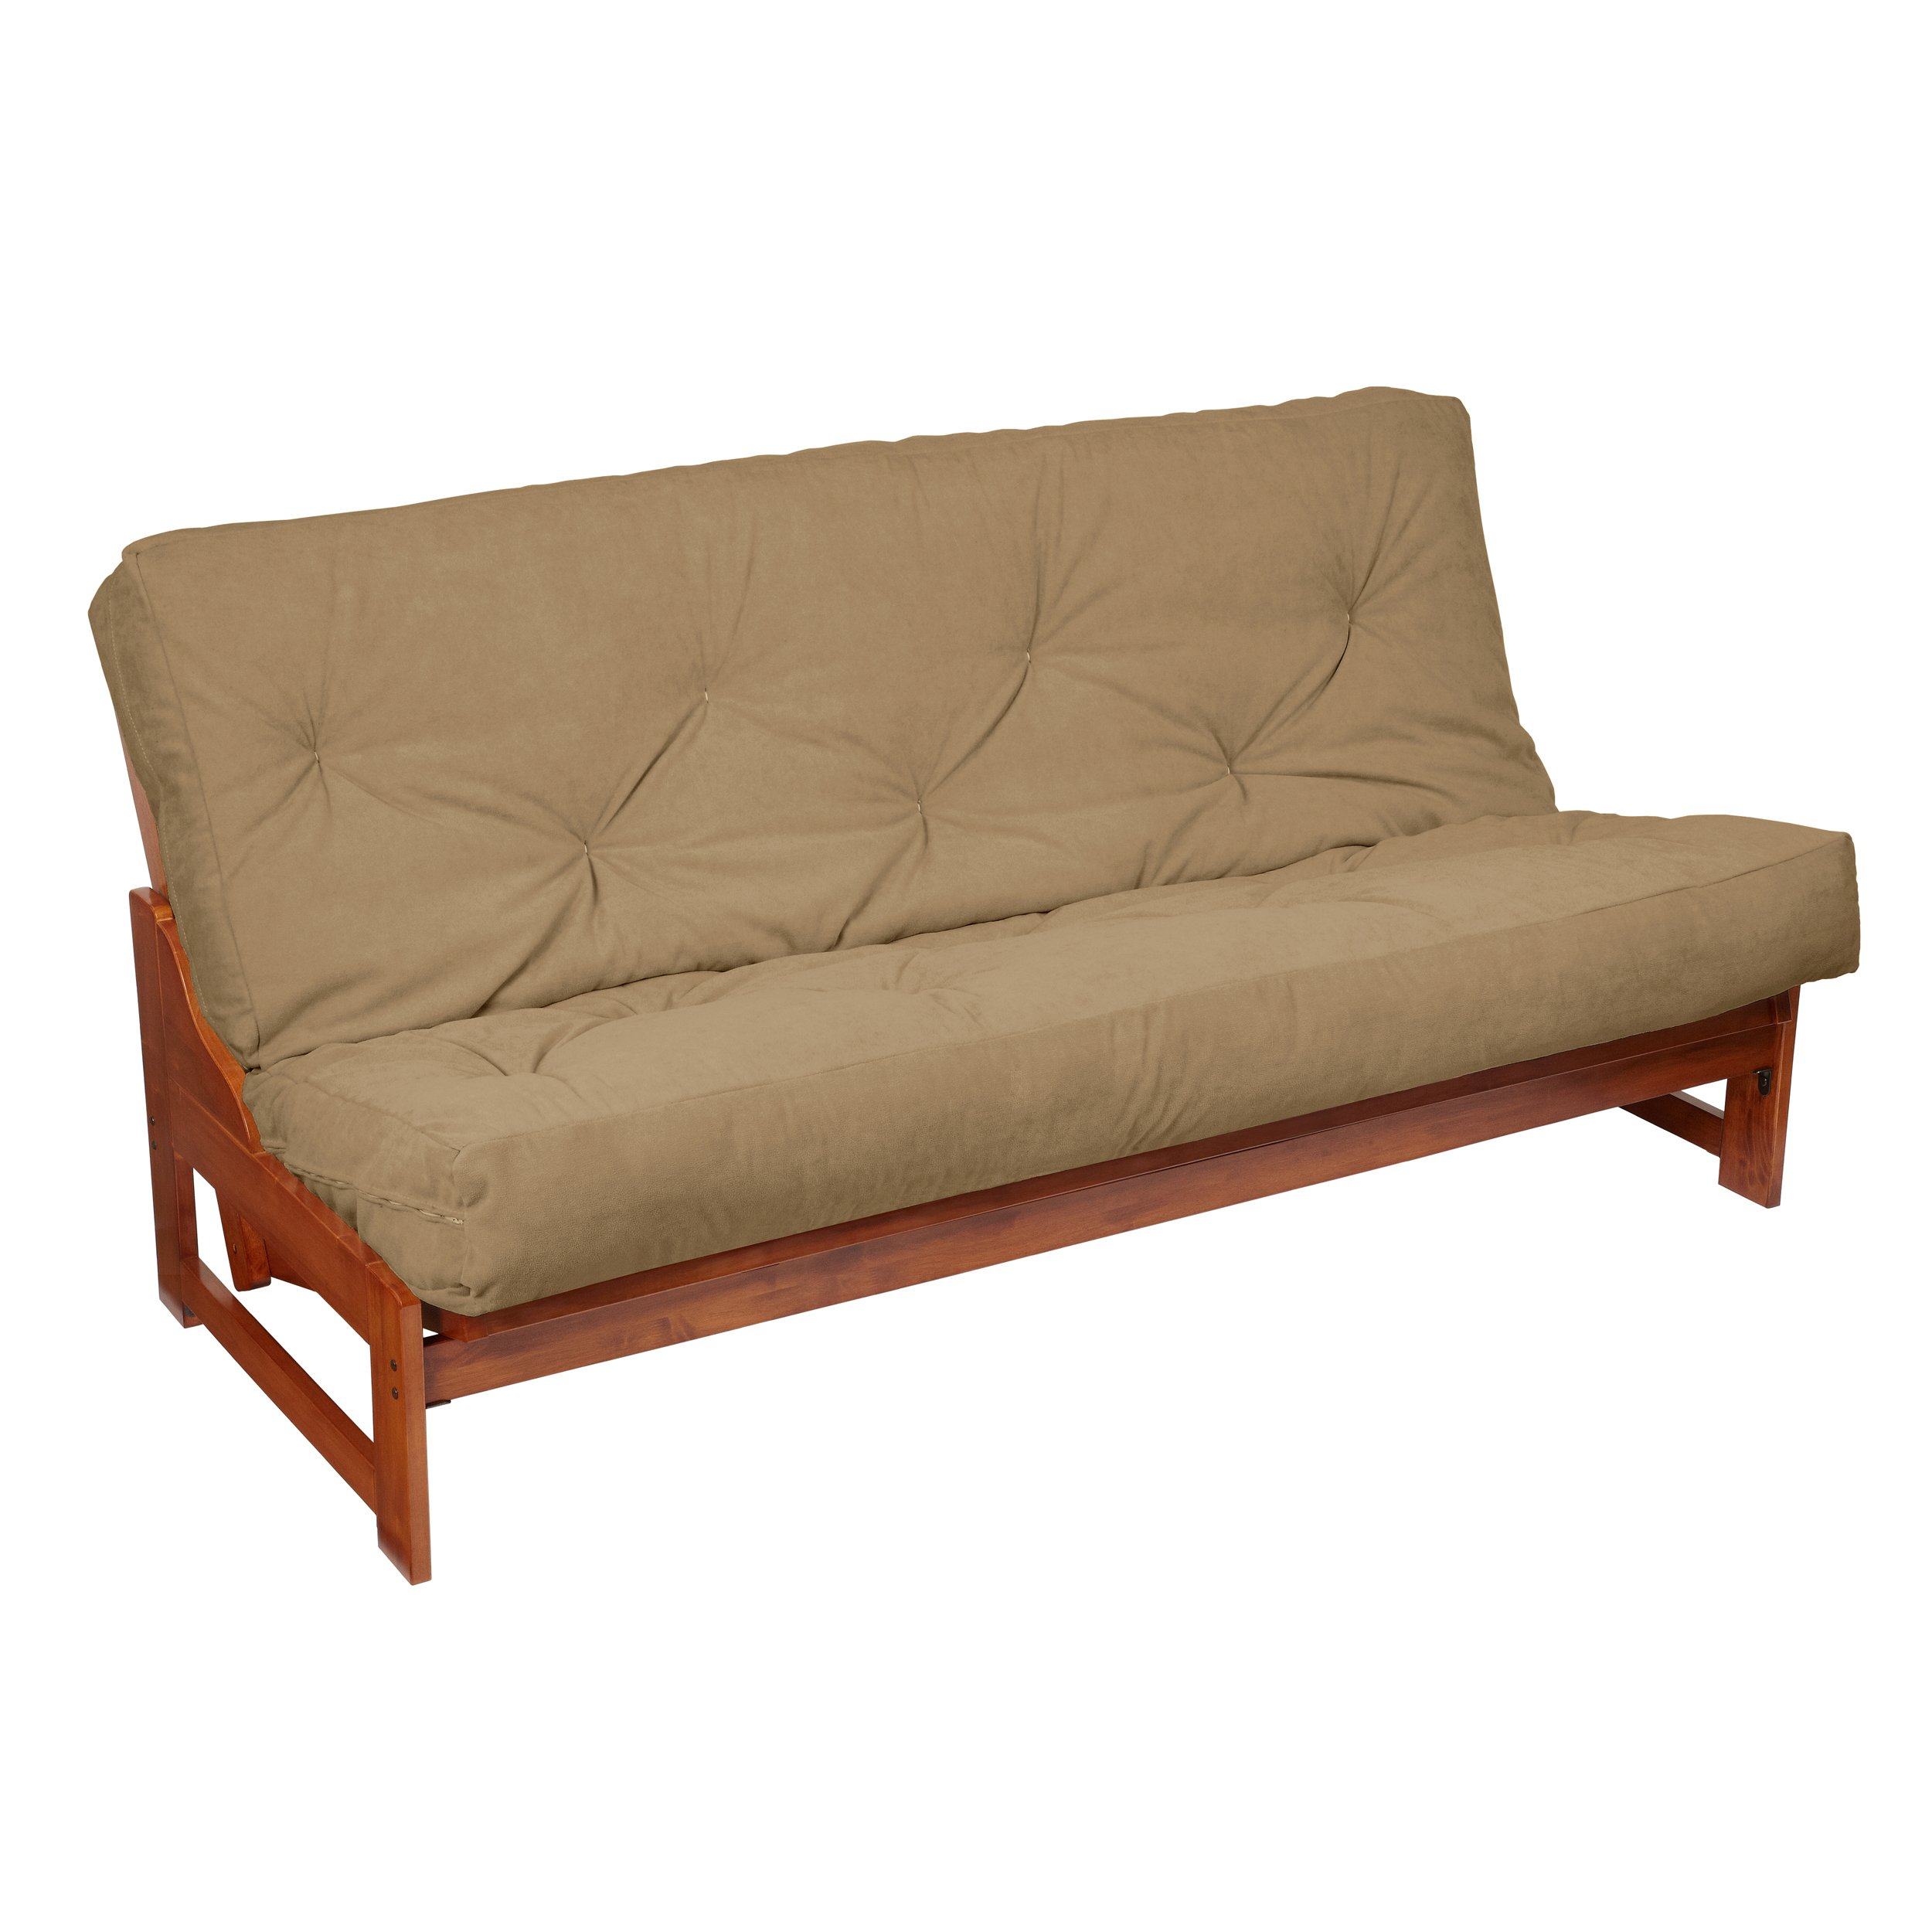 Mozaic Futon Mattress, Queen, Suede Khaki by Mozaic